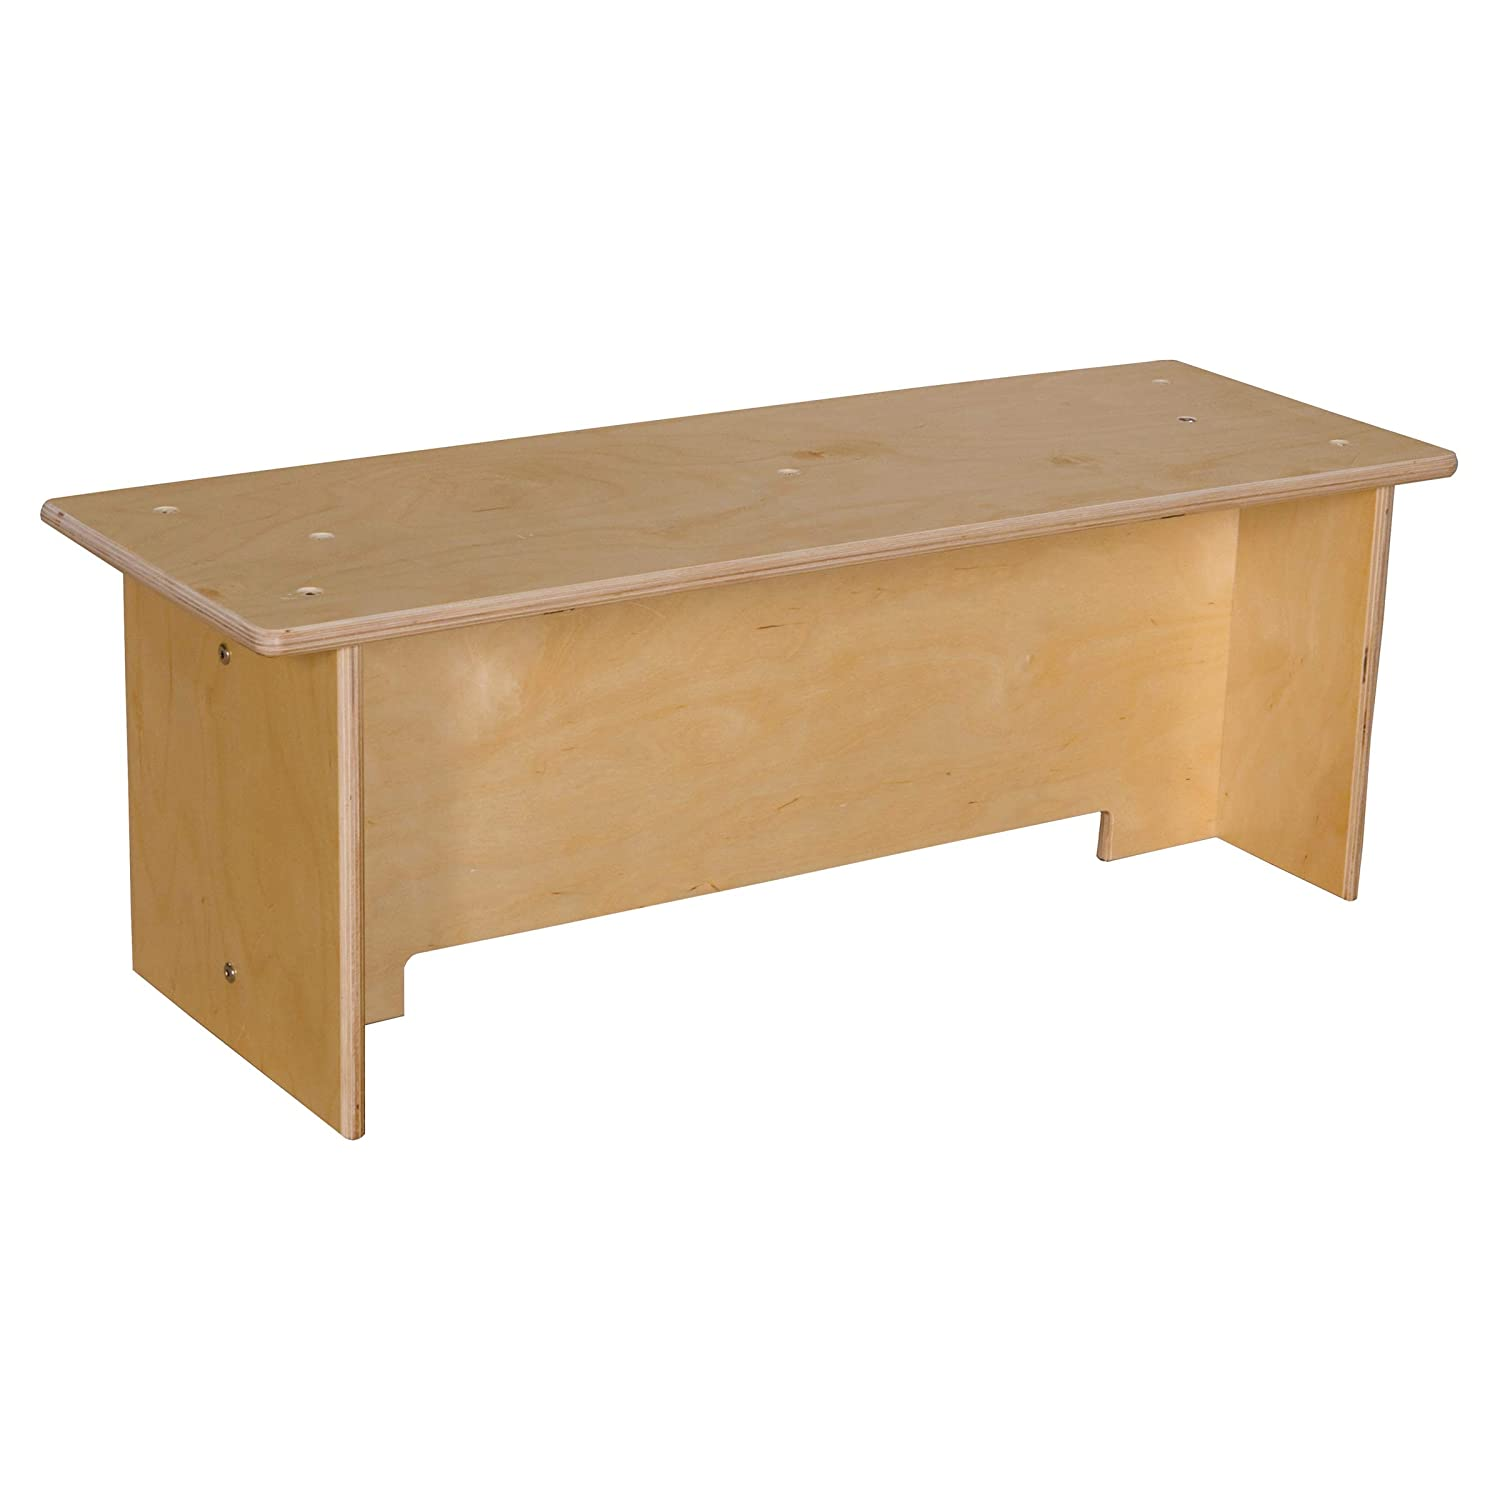 Image of Contender Toddler Bench - RTA Early Childhood Education Materials